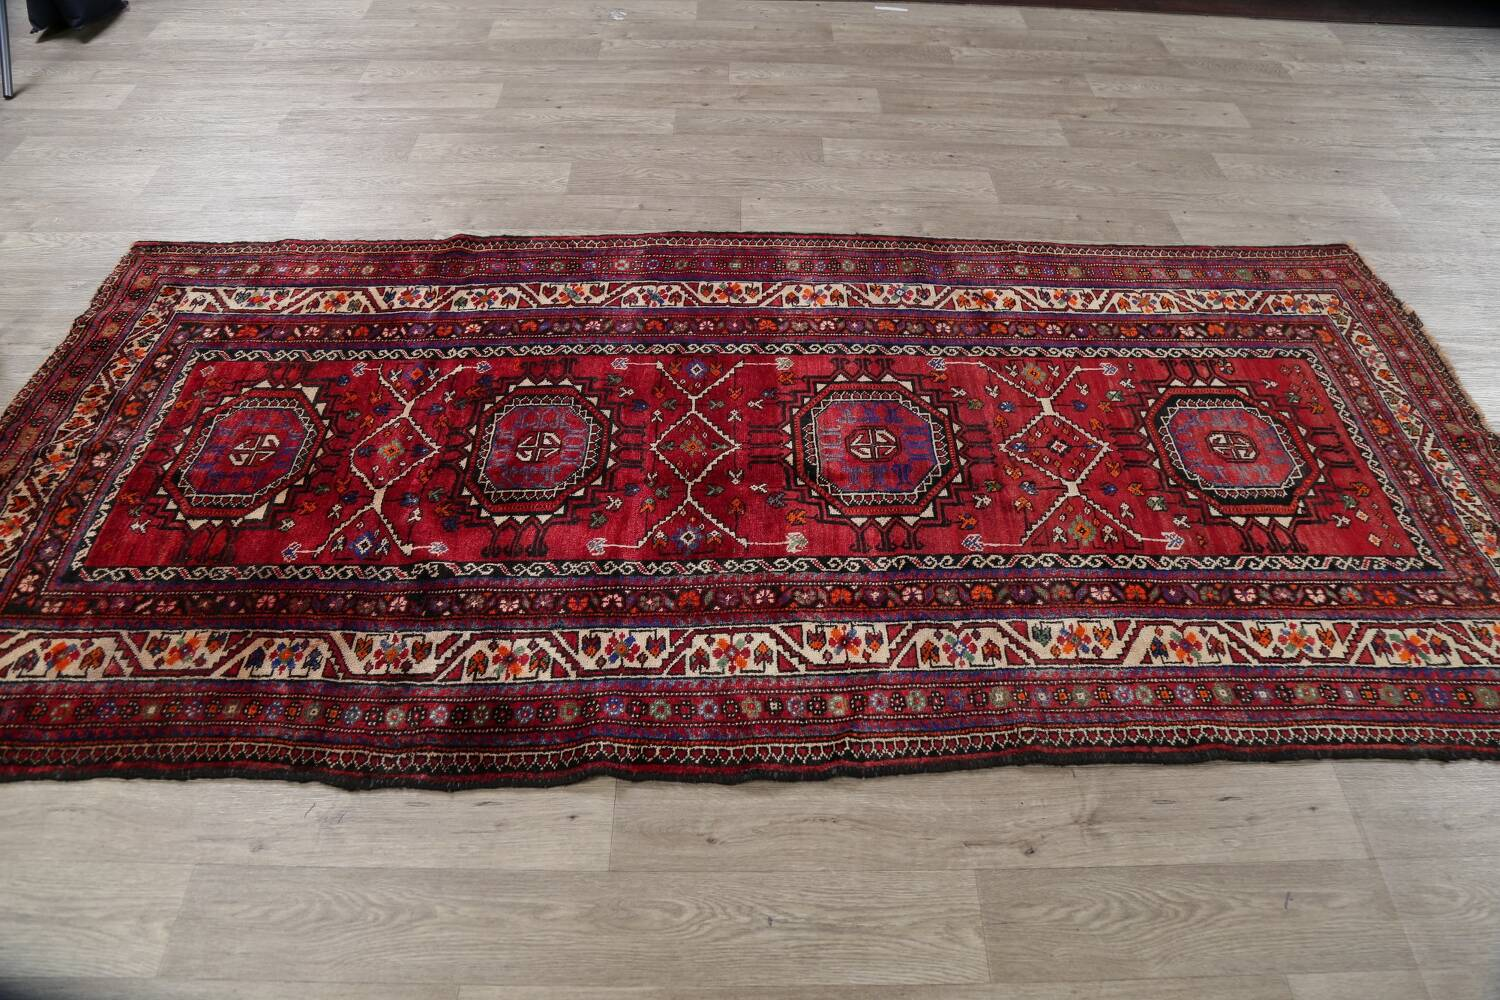 Vintage Geometric Red Malayer Persian Runner Rug 4x9 image 15